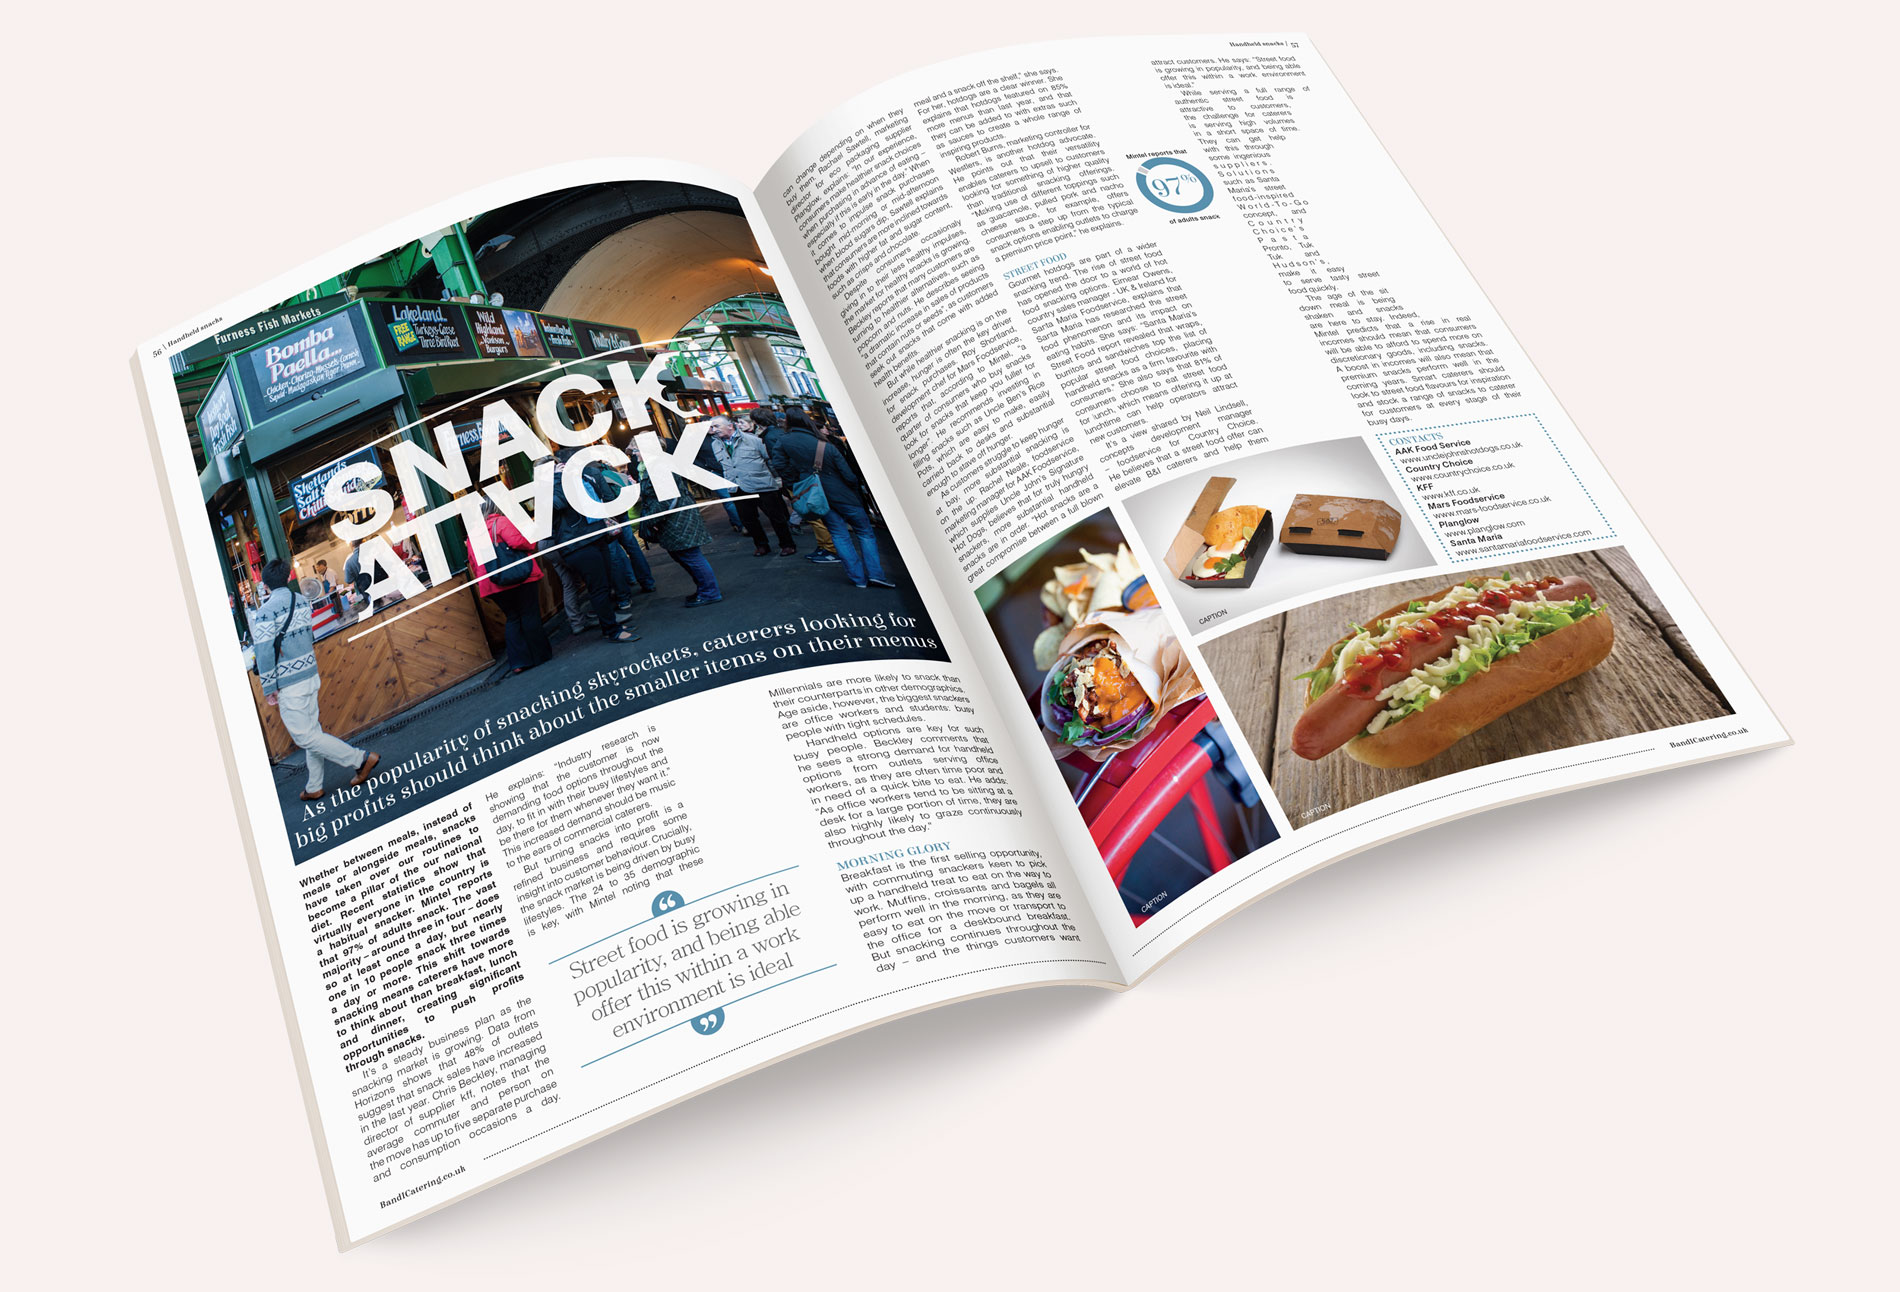 Bandicatering B&I catering magazine spread snack attack - design whitstable kent